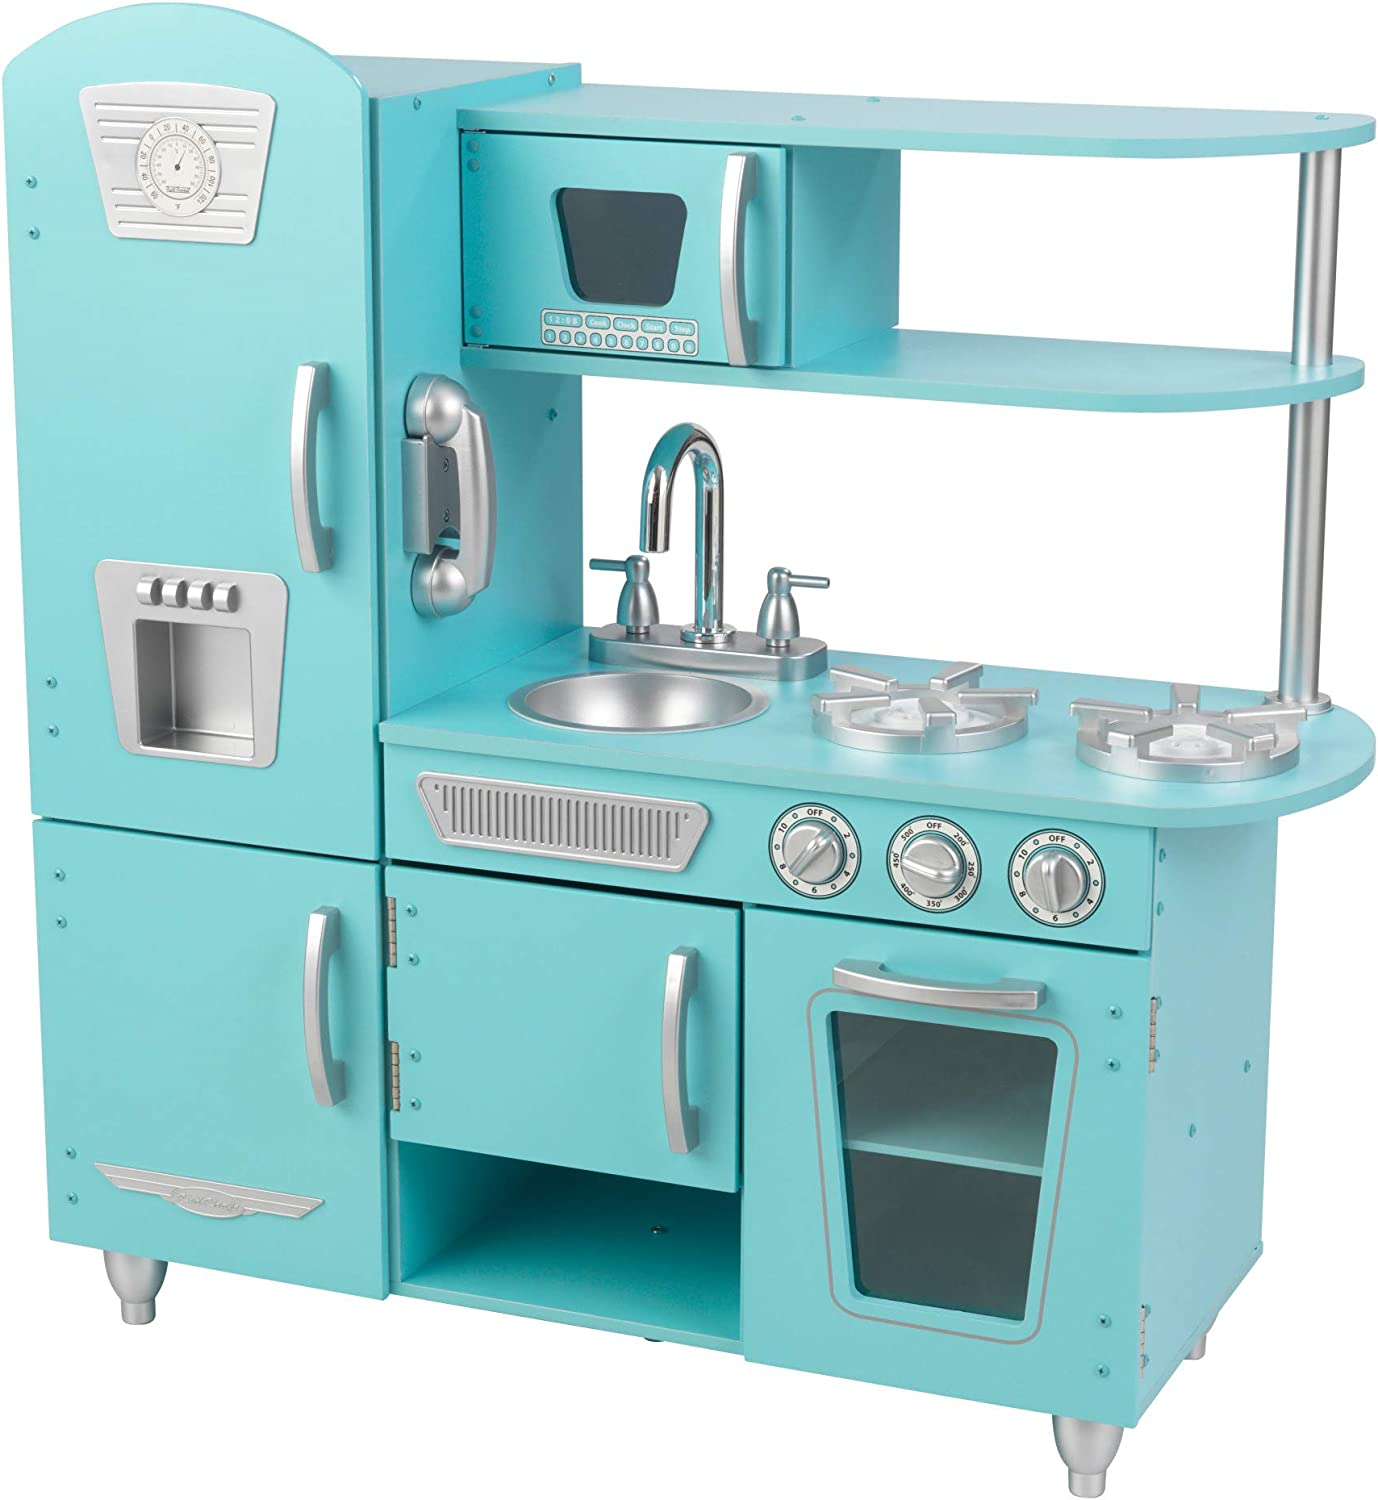 Amazon Com Kidkraft Vintage Wooden Play Kitchen With Pretend Ice Maker And Play Phone Blue Gift For Ages 3 Toys Games